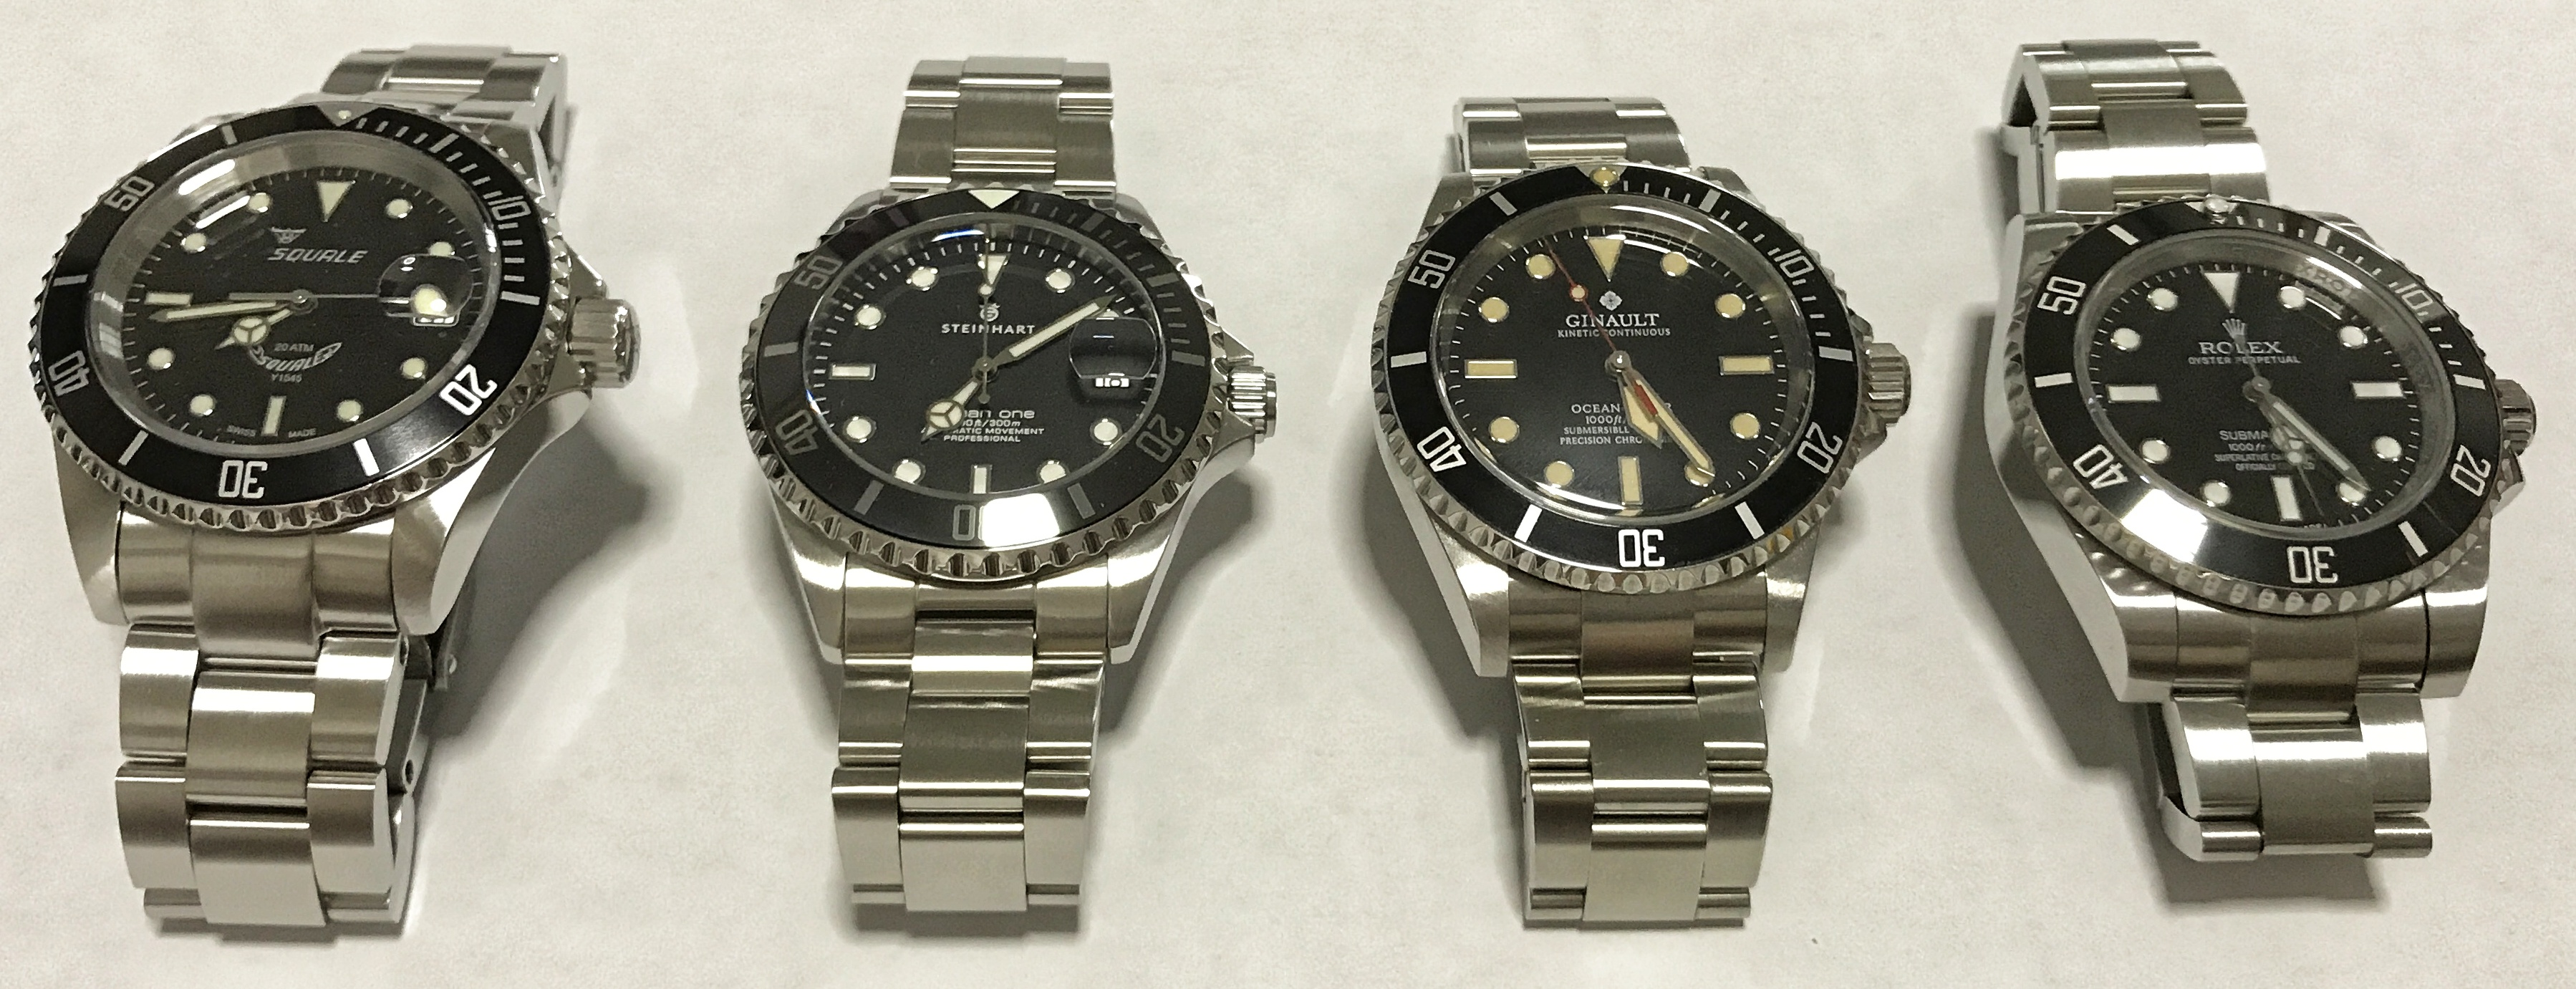 Yes Steinhart Will Release 39mm Models Page 32